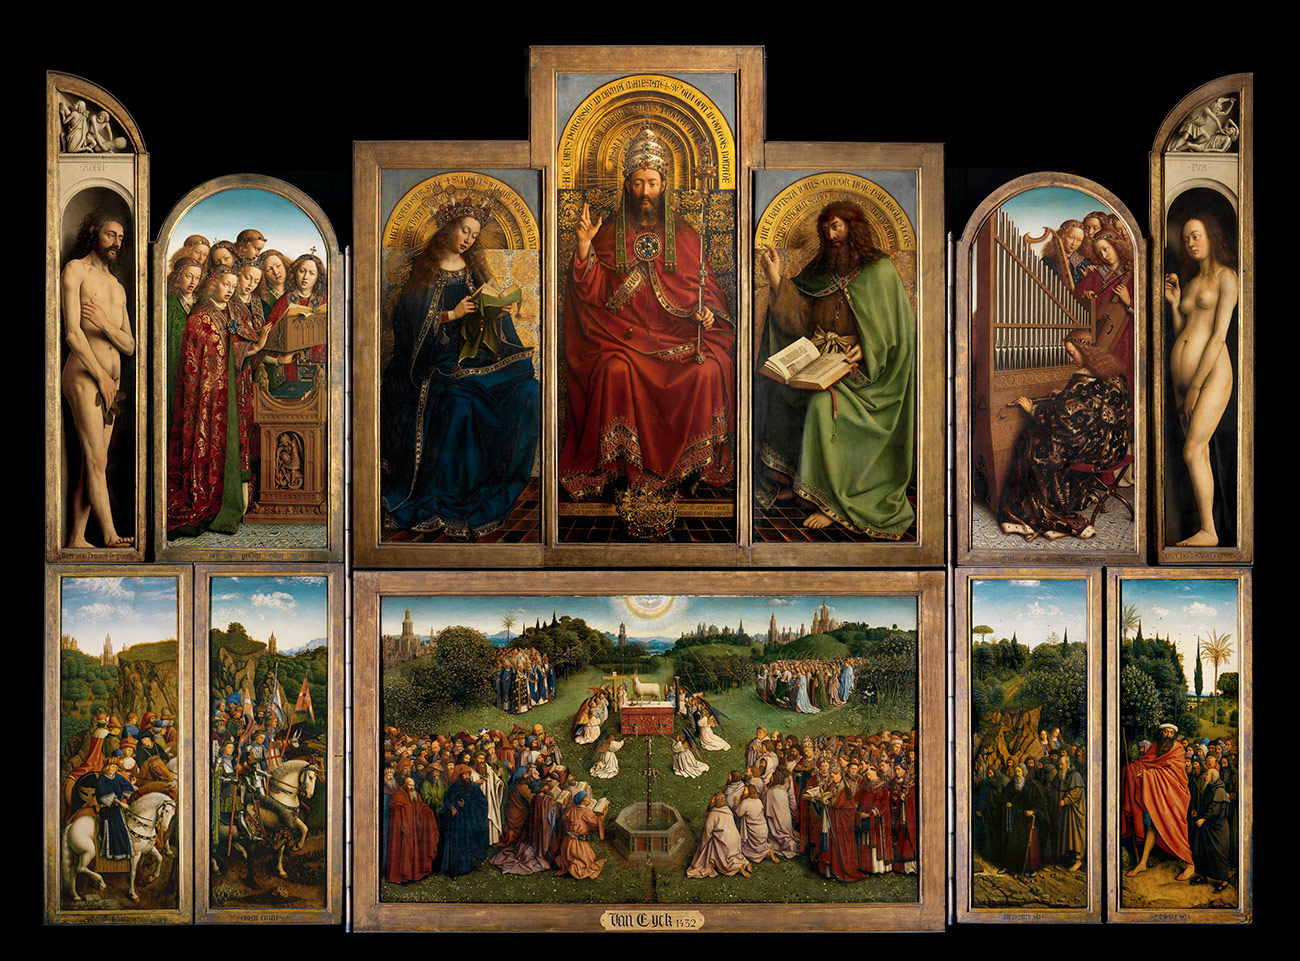 An intricate Christian altarpiece painted of many panels painted on wood in vivid colors, with extensive gilding